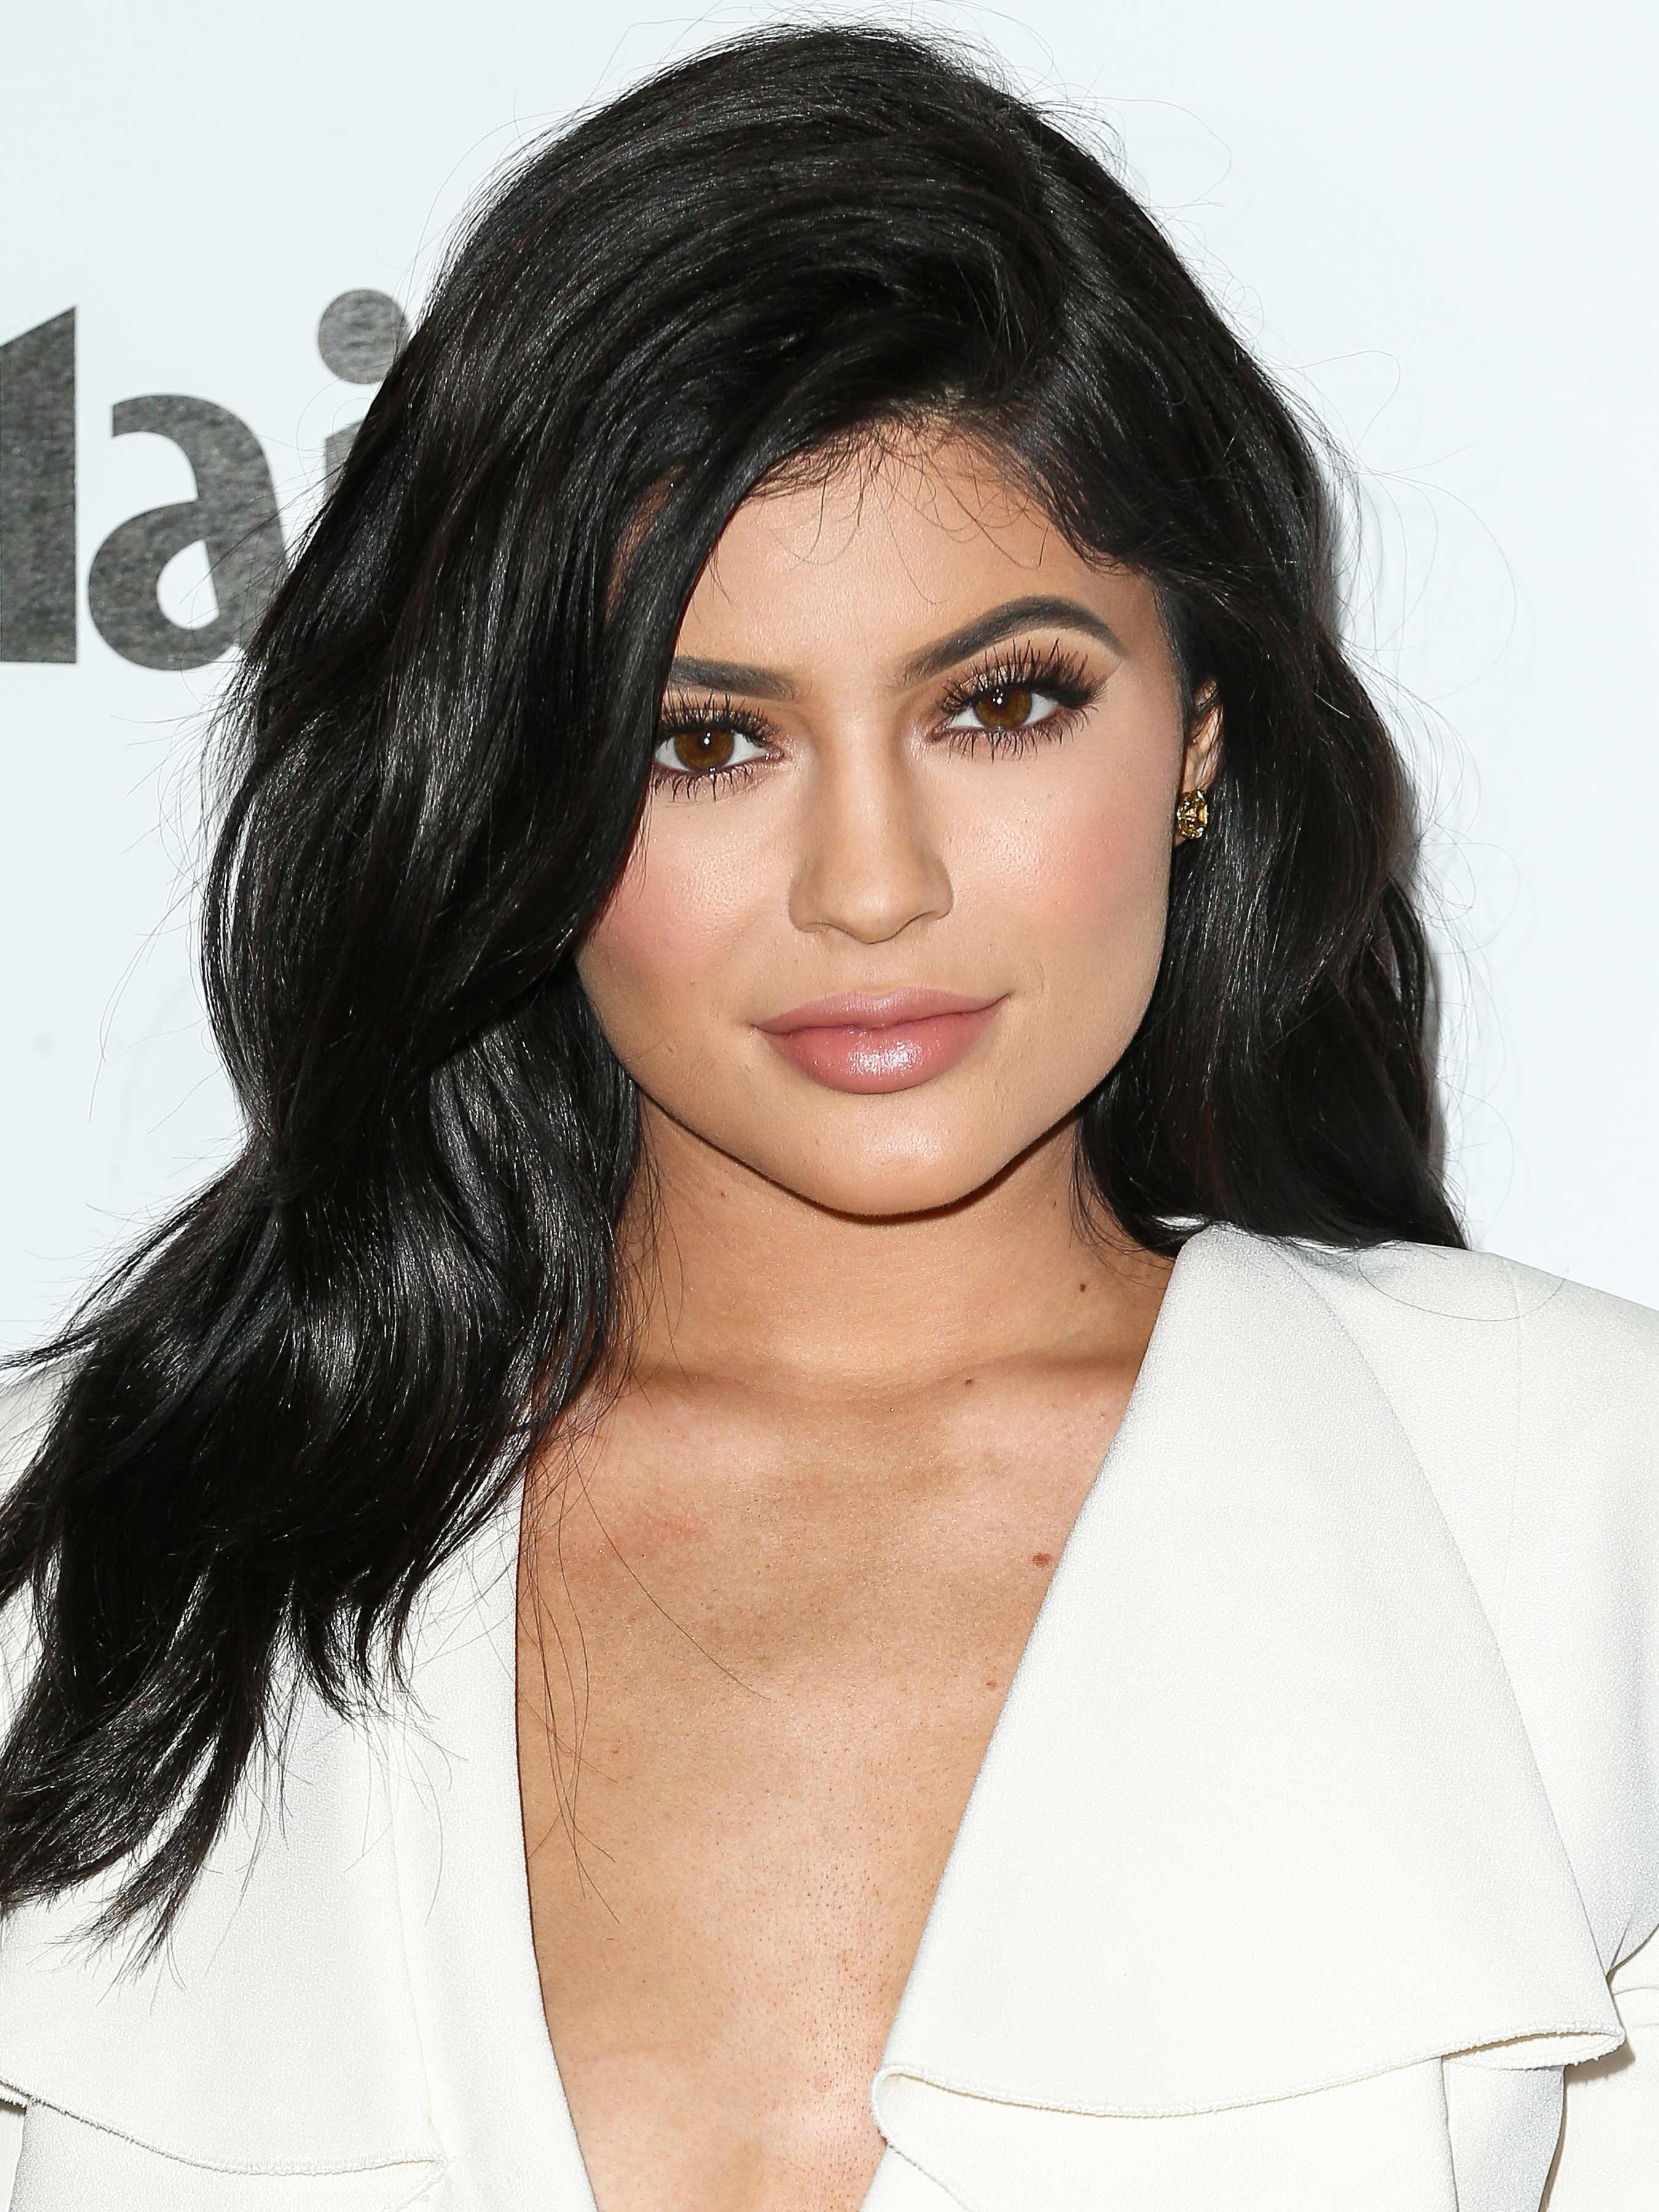 Every Kylie Lip Kit Dupe: Kylie Jenner's Changing Style From 2002 To Now, 60 Outfit